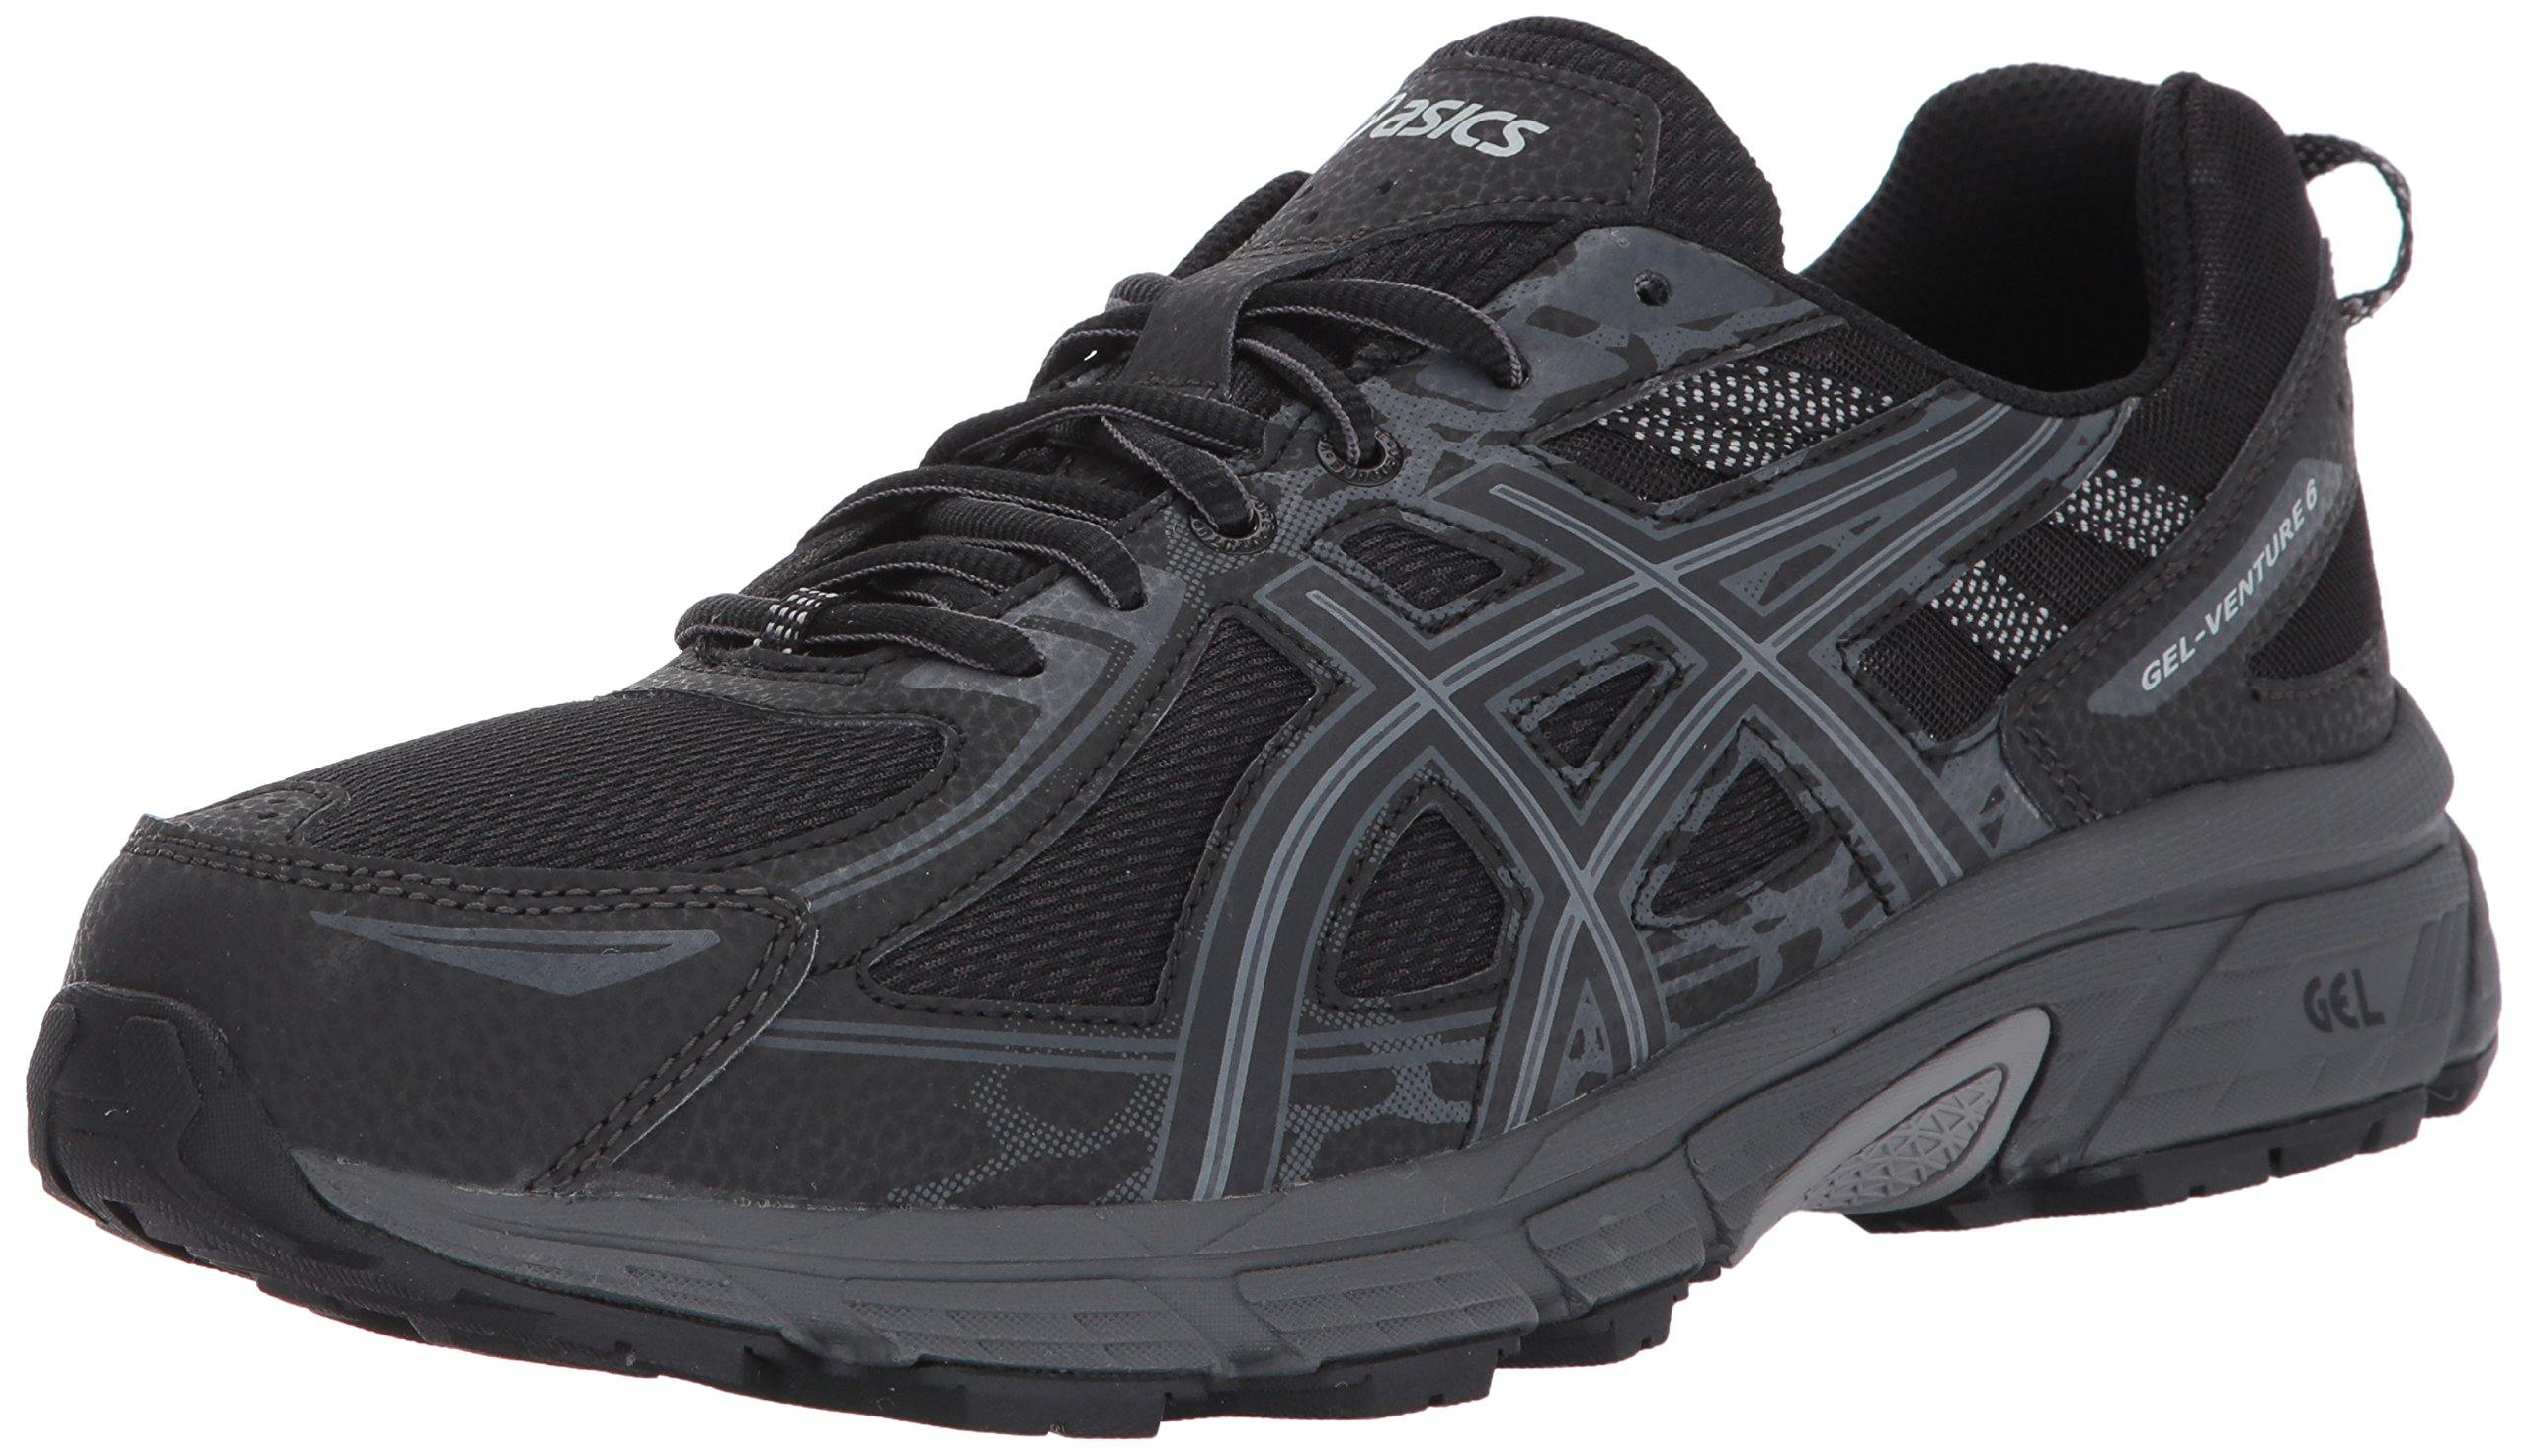 ASICS Mens Gel-Venture 6 Running Shoe, Black/Phantom/Mid Grey, 7.5 Medium US